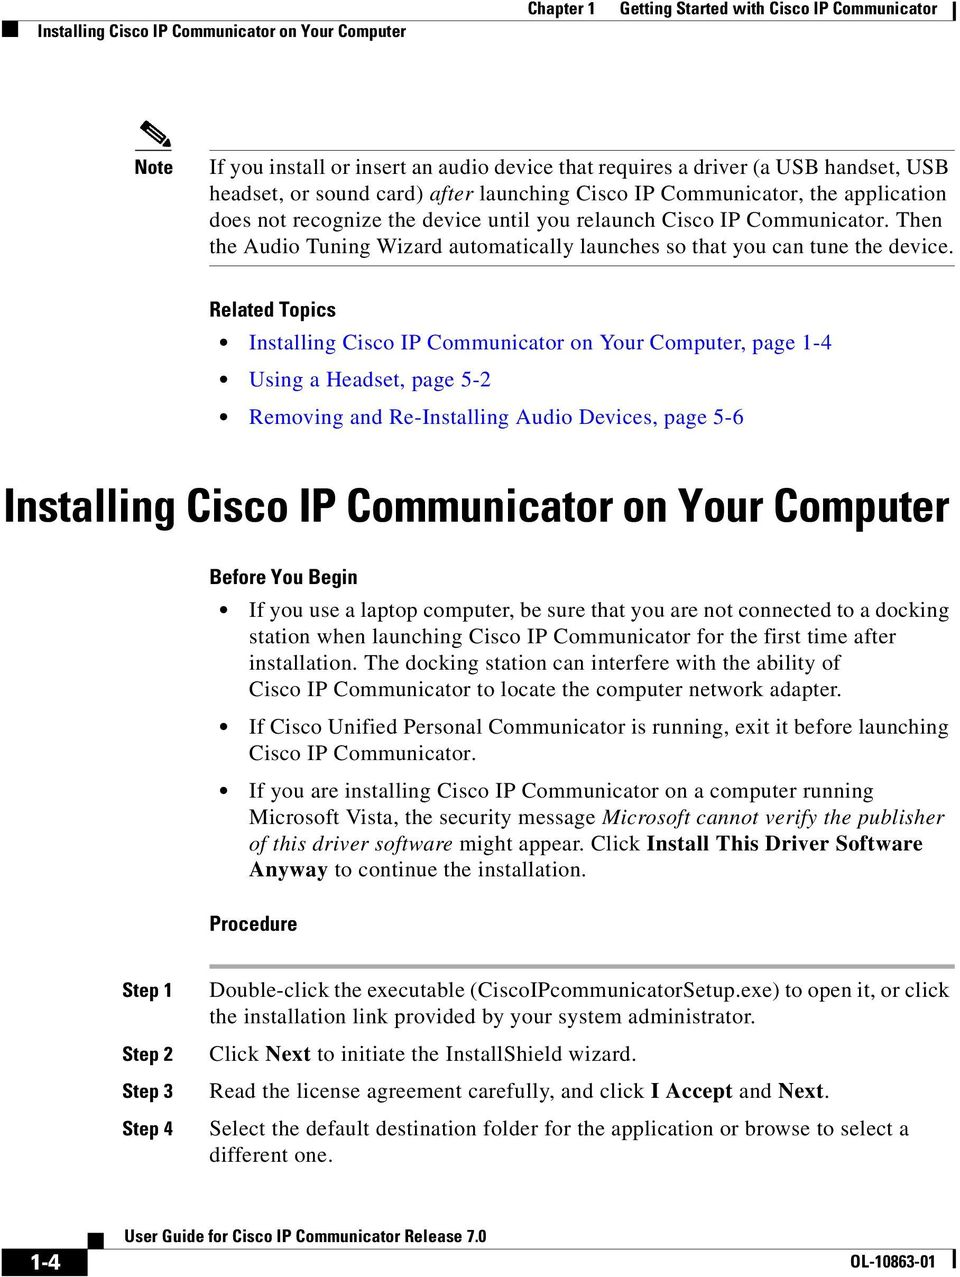 Installing Cisco IP Communicator on Your Computer, page 1-4 Using a Headset, page 5-2 Removing and Re-Installing Audio Devices, page 5-6 Installing Cisco IP Communicator on Your Computer Before You